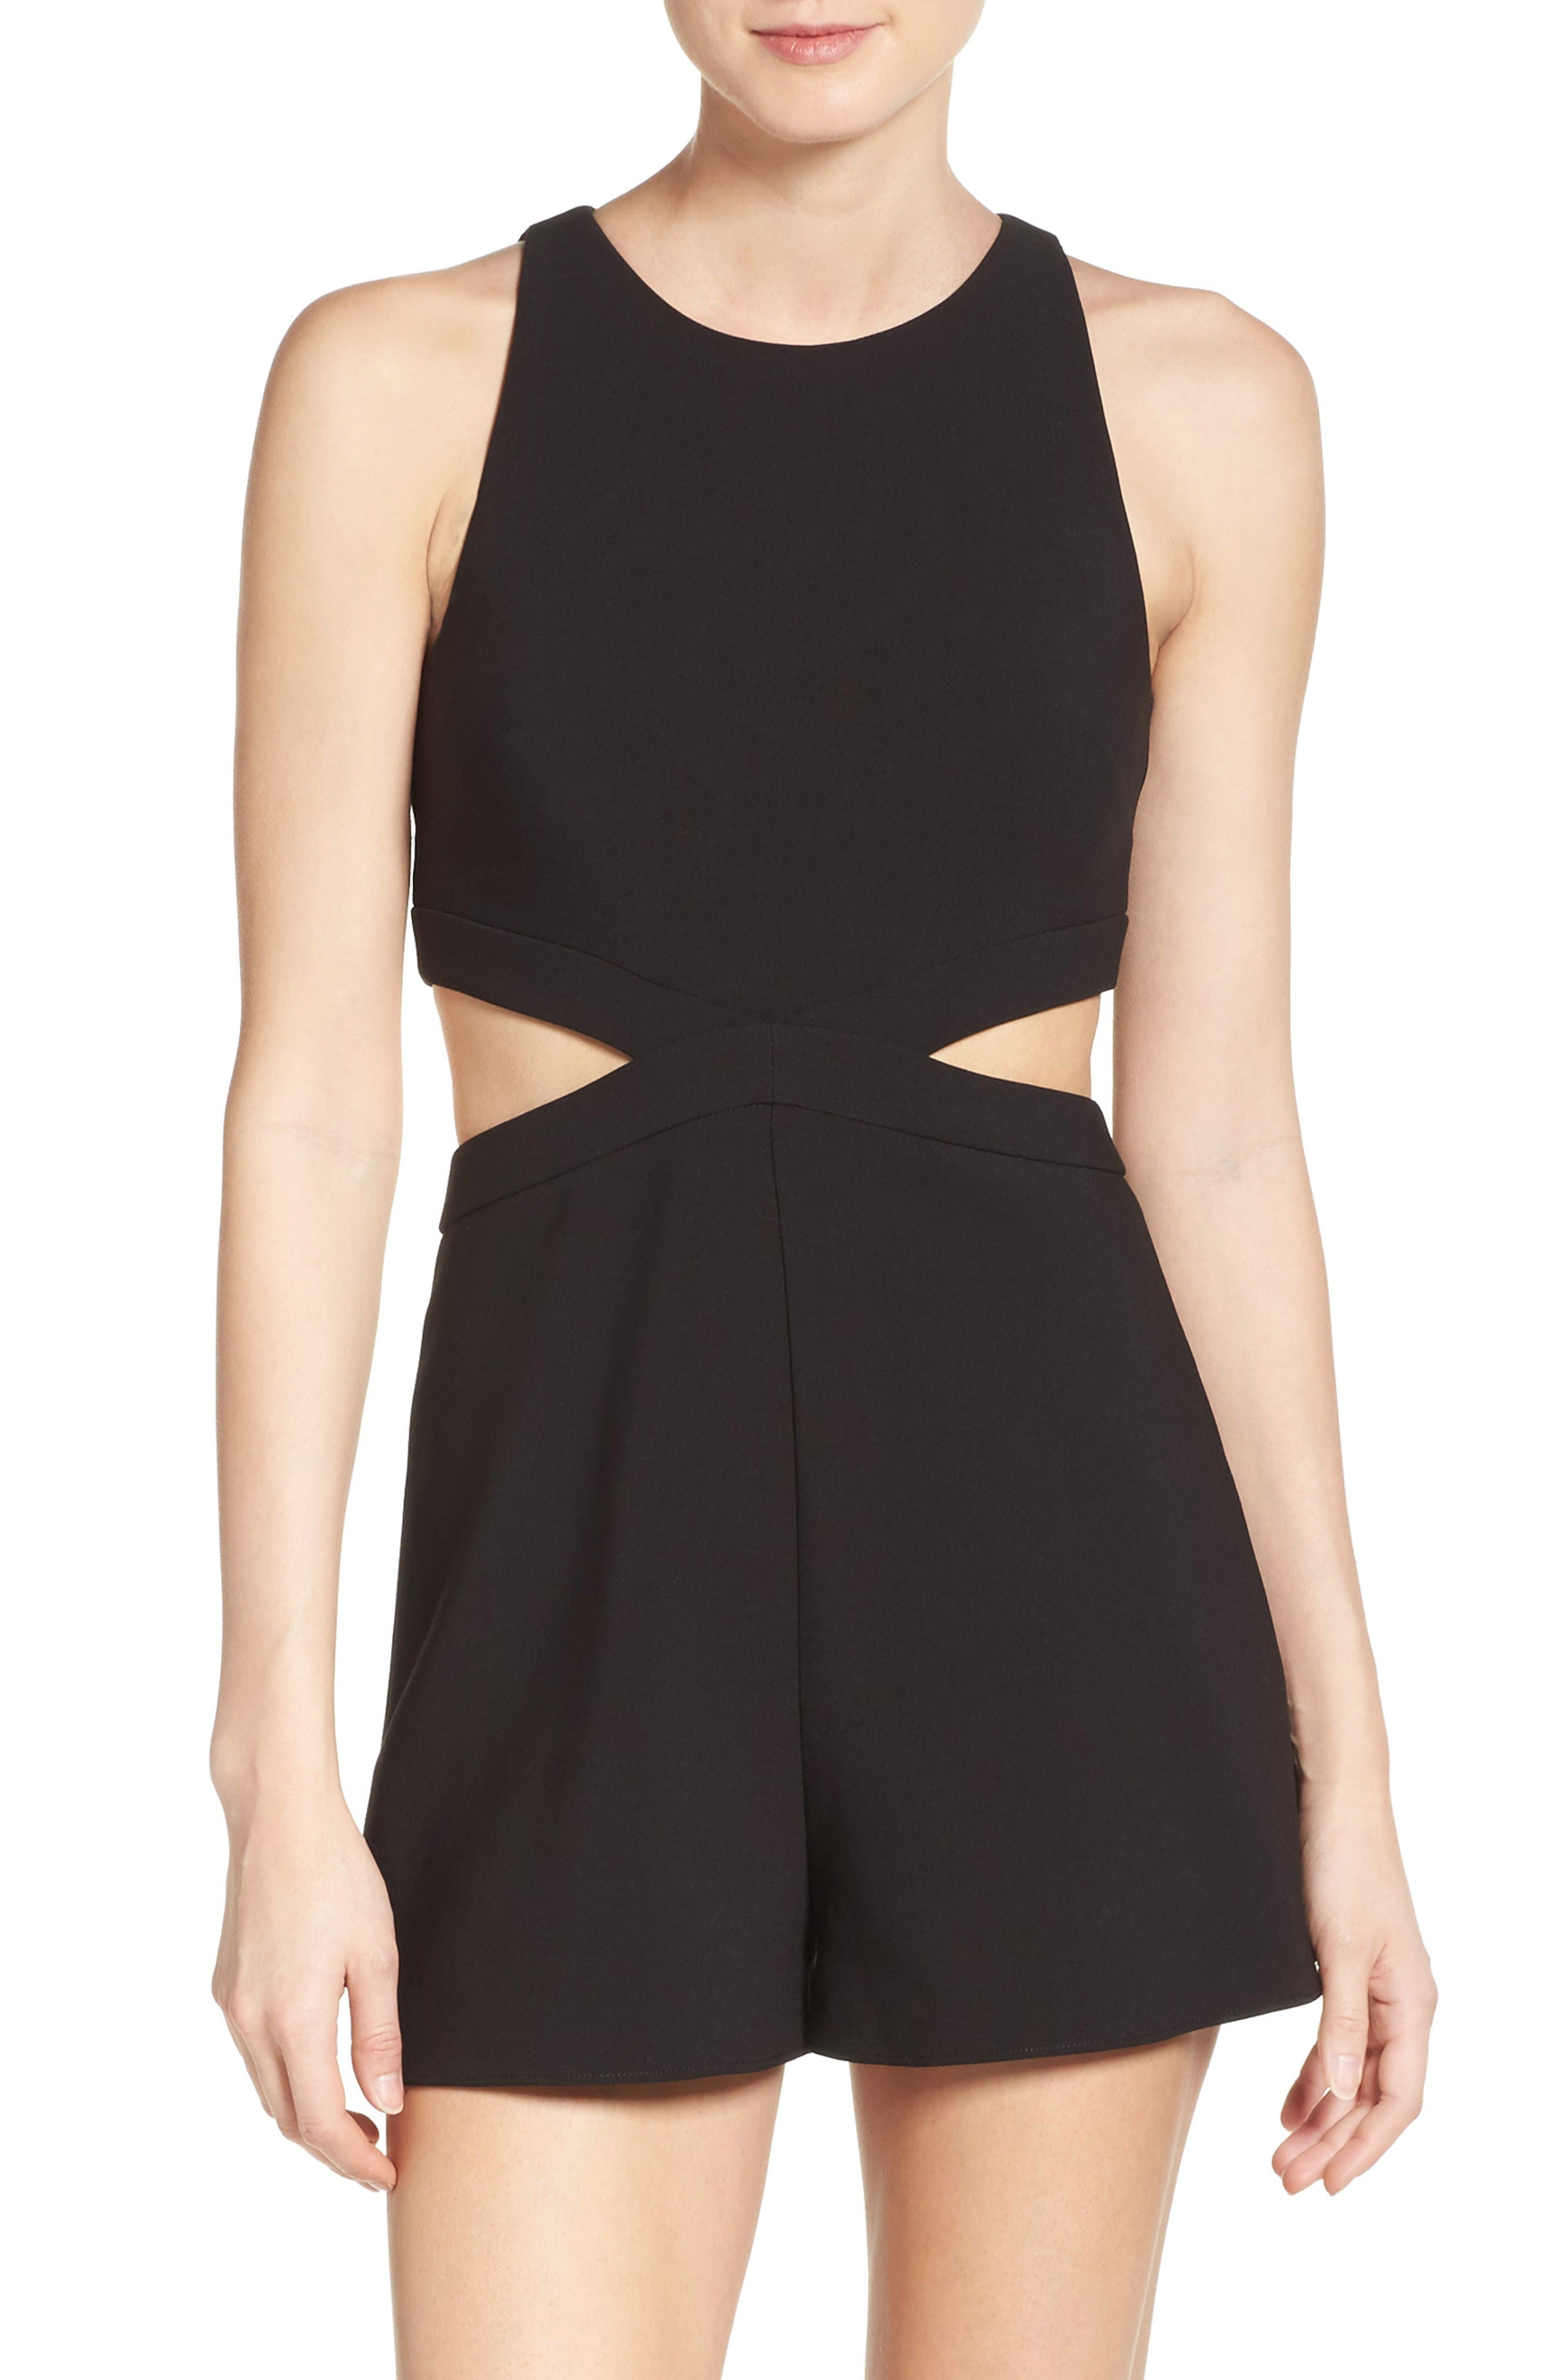 Likely Encino Cutout Romper